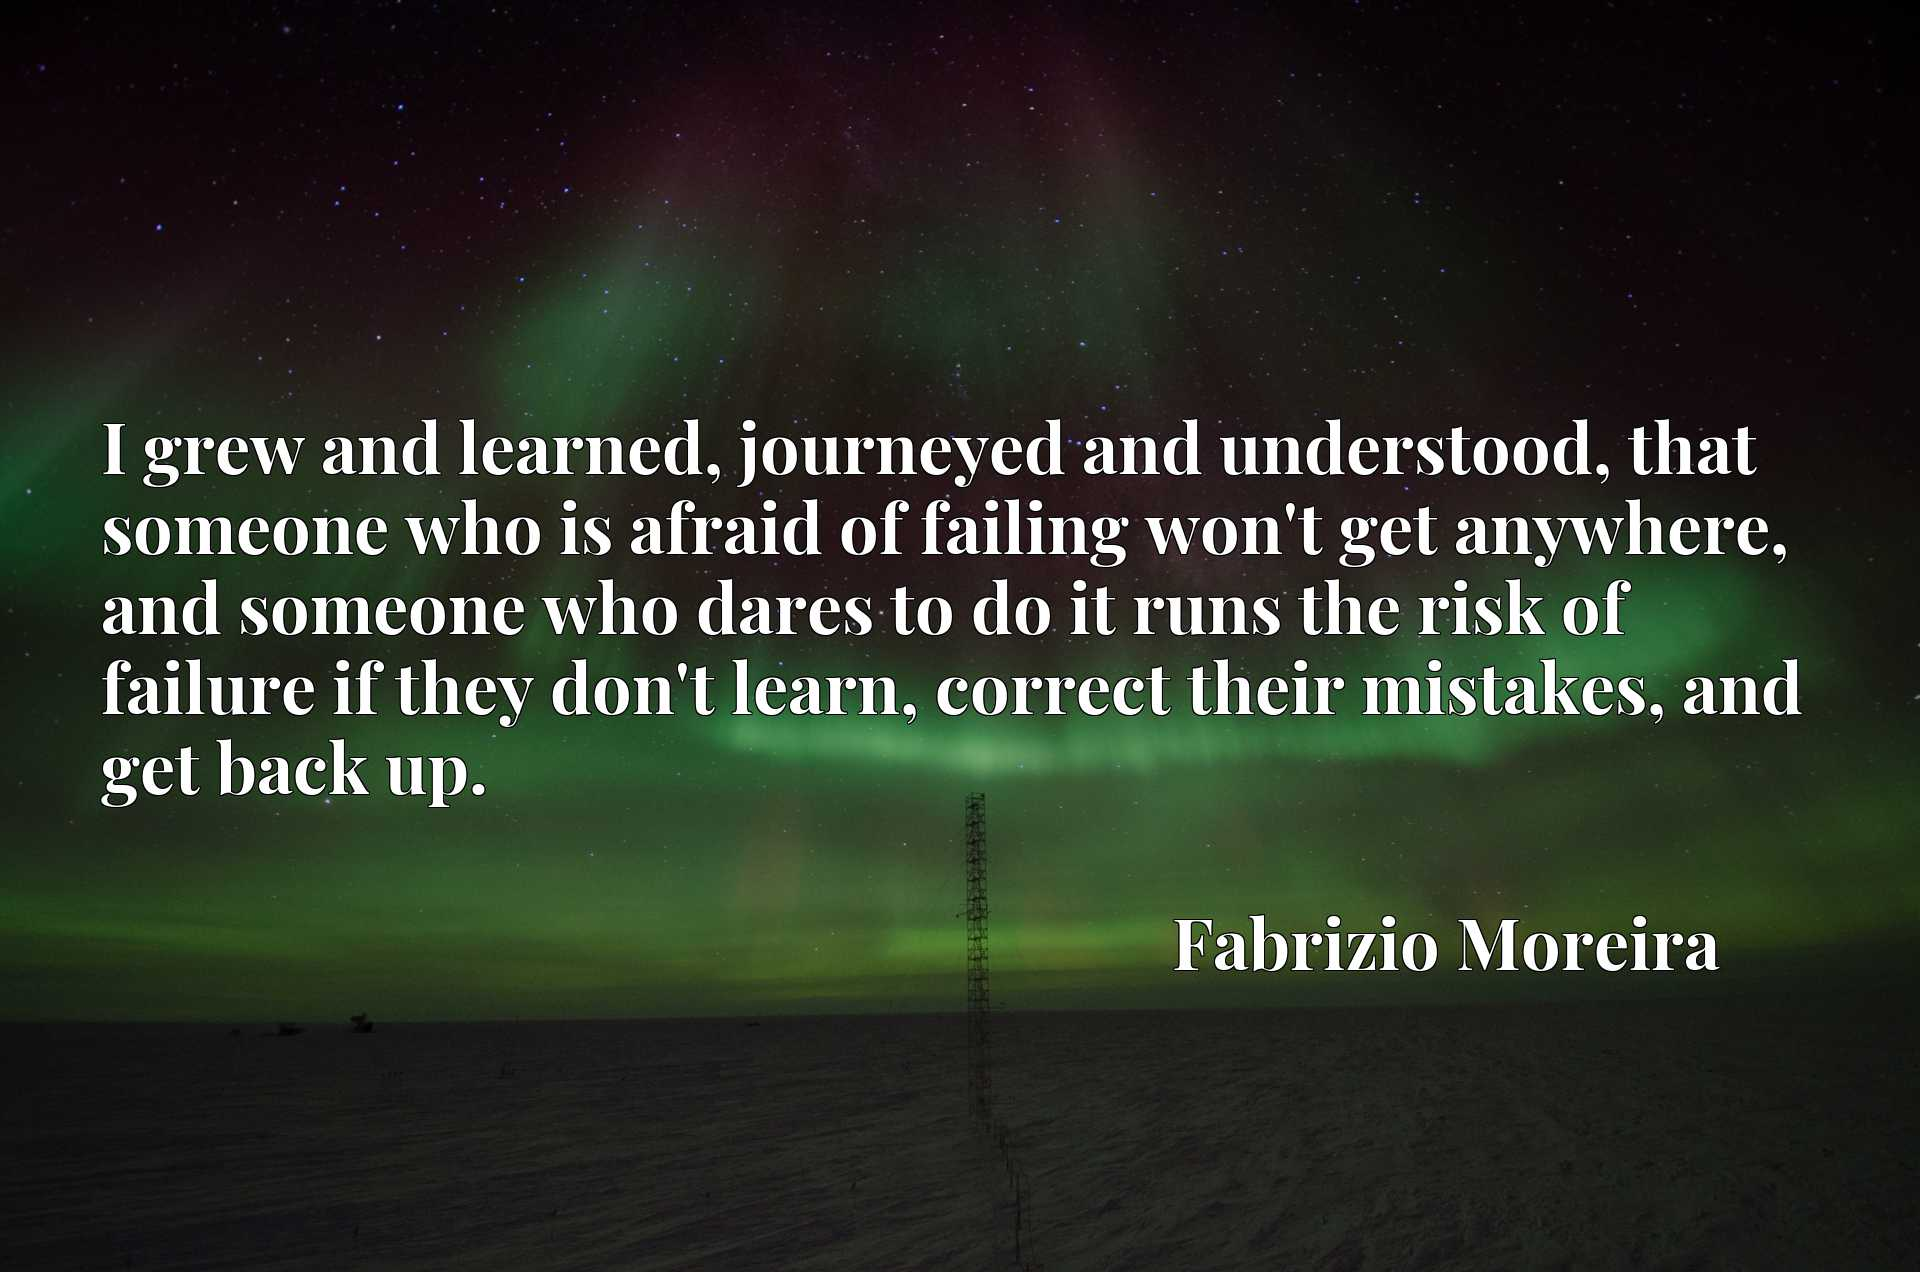 I grew and learned, journeyed and understood, that someone who is afraid of failing won't get anywhere, and someone who dares to do it runs the risk of failure if they don't learn, correct their mistakes, and get back up.